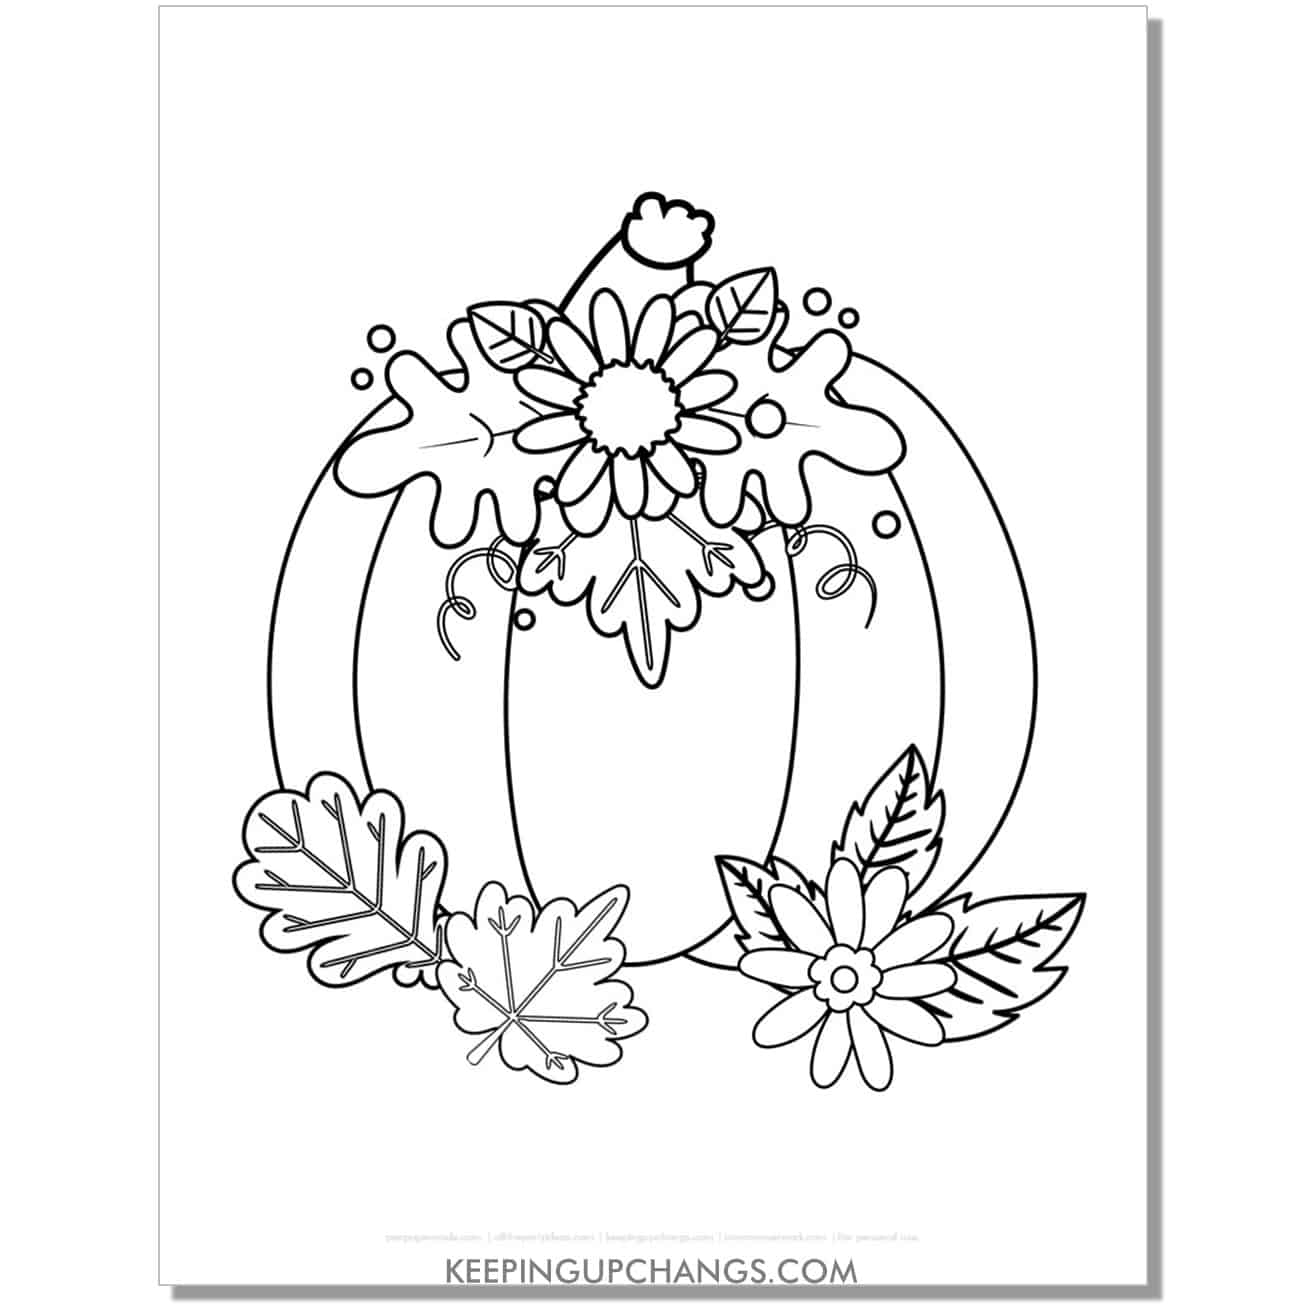 free large pumpkin with leaves coloring page for fall, thanksgiving.